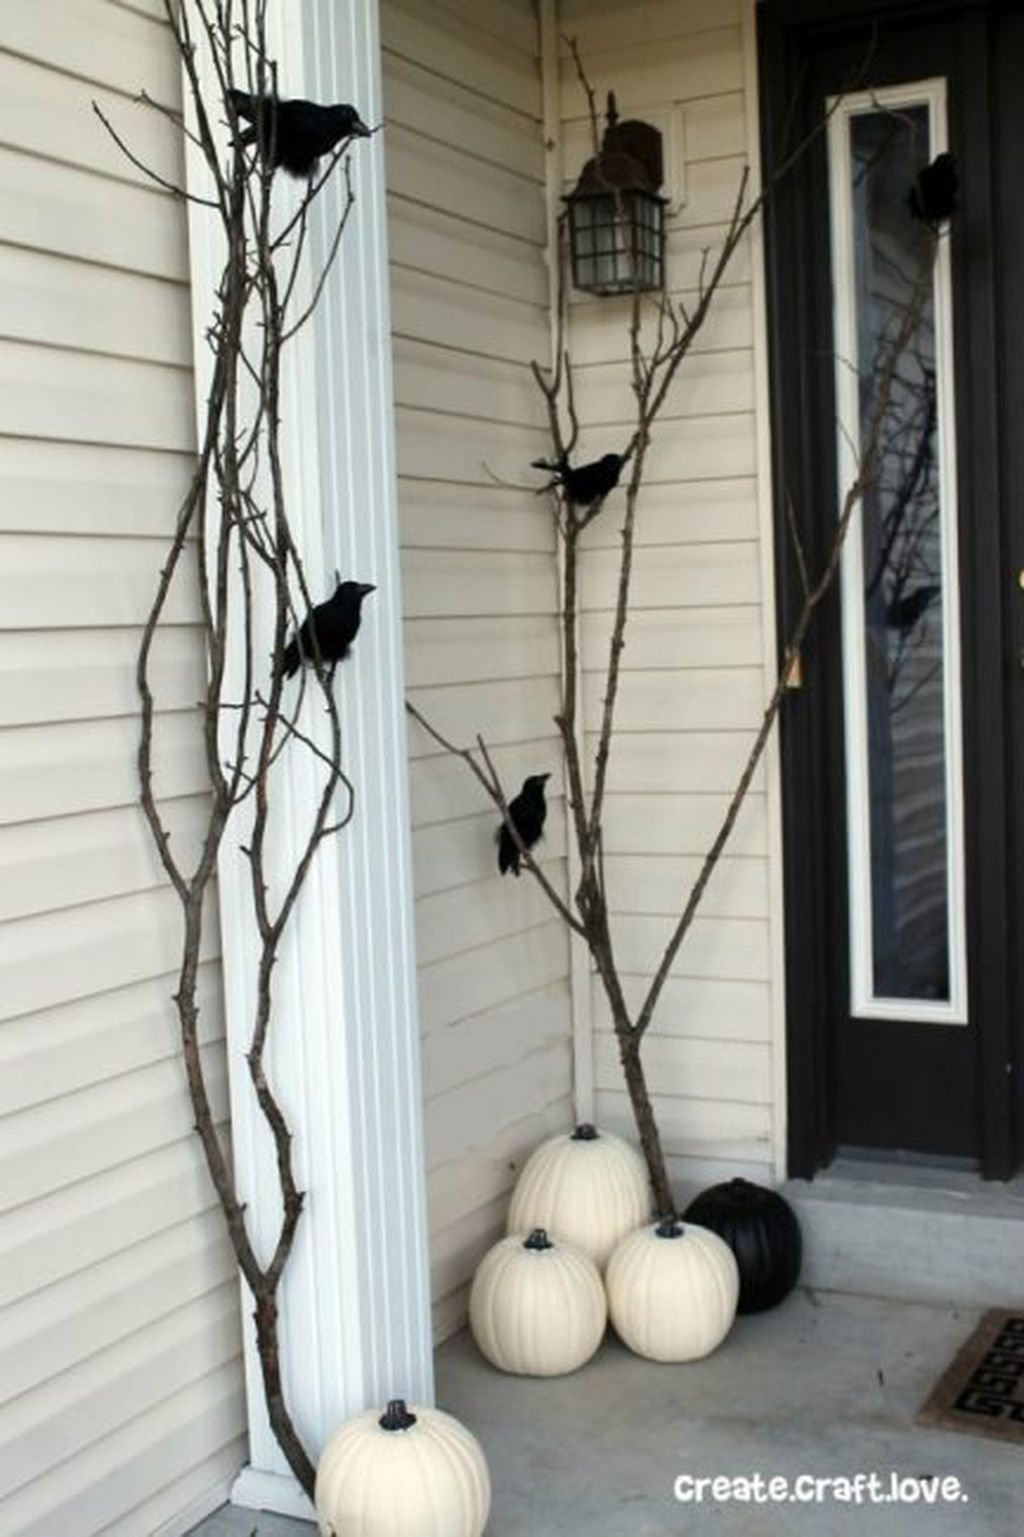 88 Scary Fall Yard Decoration Ideas You Should Try Yard - Halloween Yard Decorations Ideas